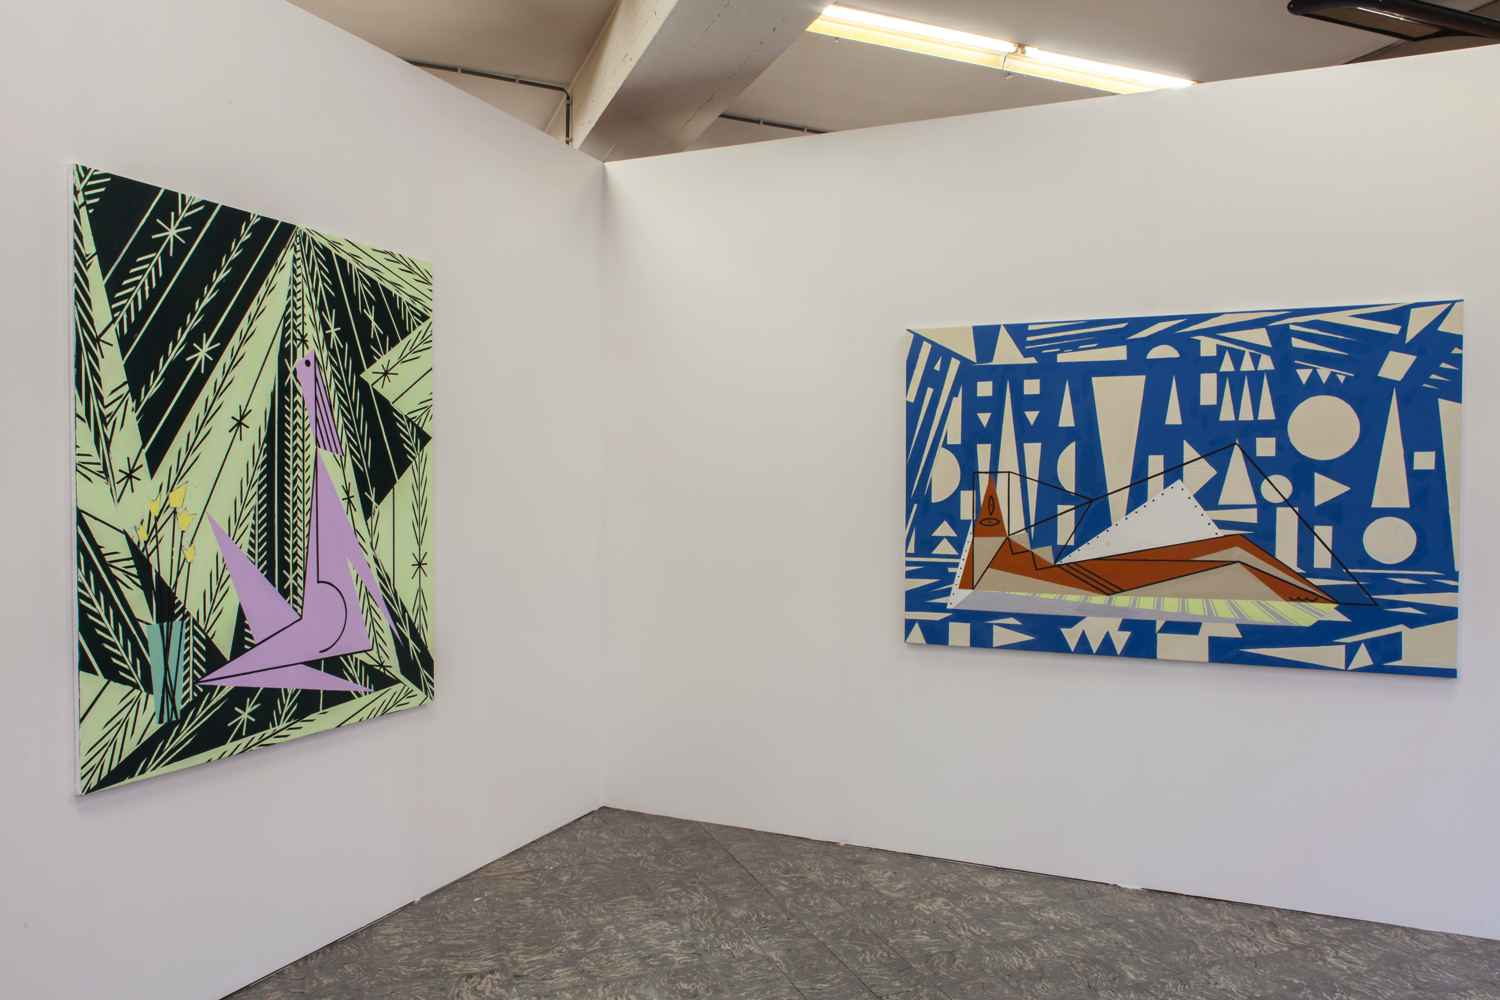 small_farah-atassi-woman-in-a-garden-2015-and-landscape-woman-2015-in-farah-atassi-installation-view-extra-city-kunsthal-2015-we-document-art-2